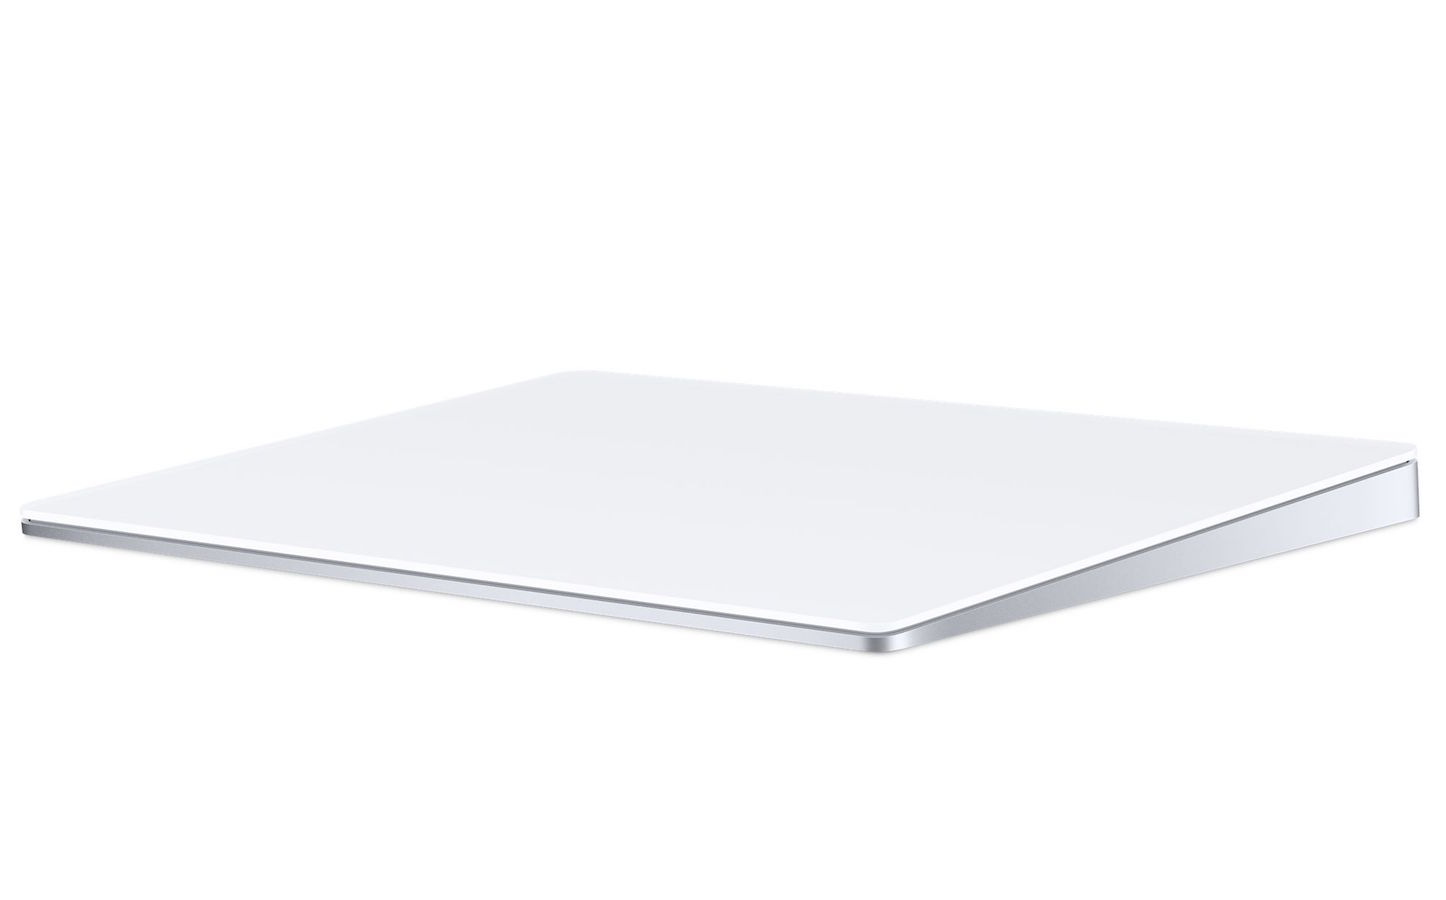 Magic Trackpad 2 Image